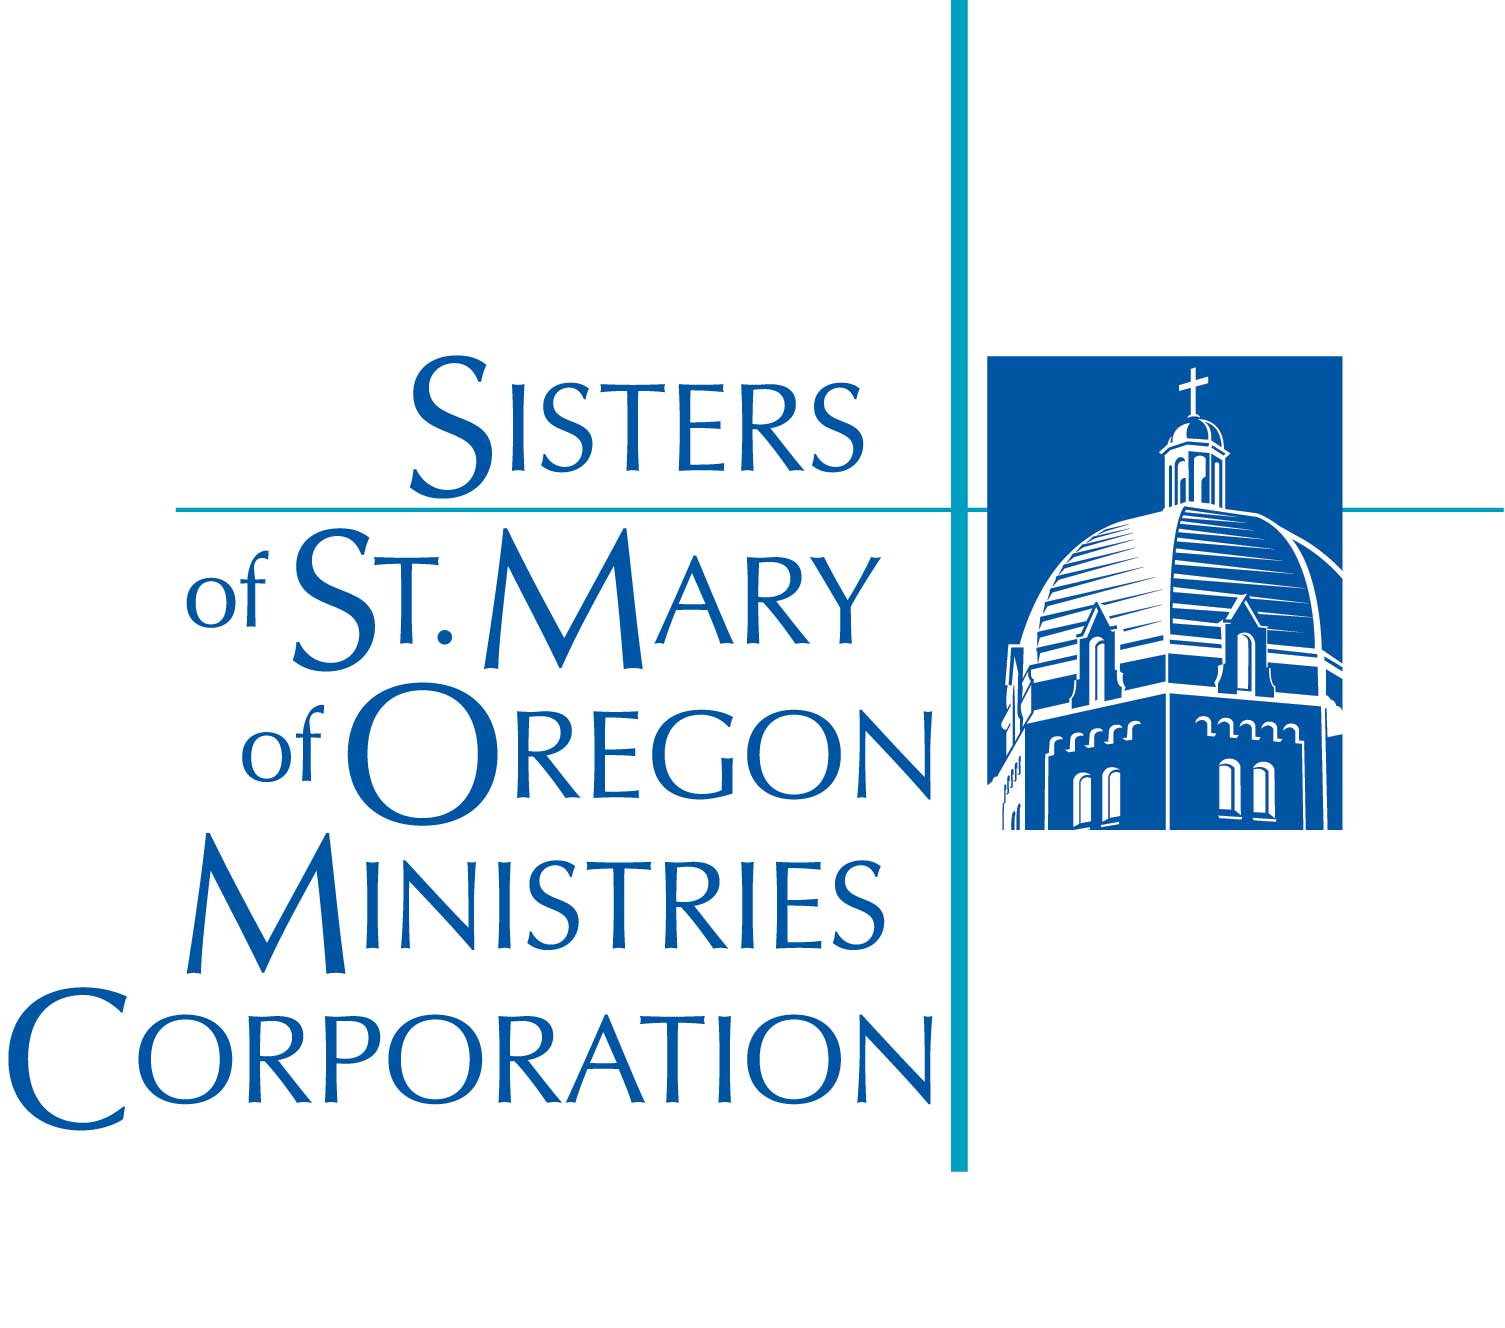 Sisters of St Mary of Oregon Ministries Corp